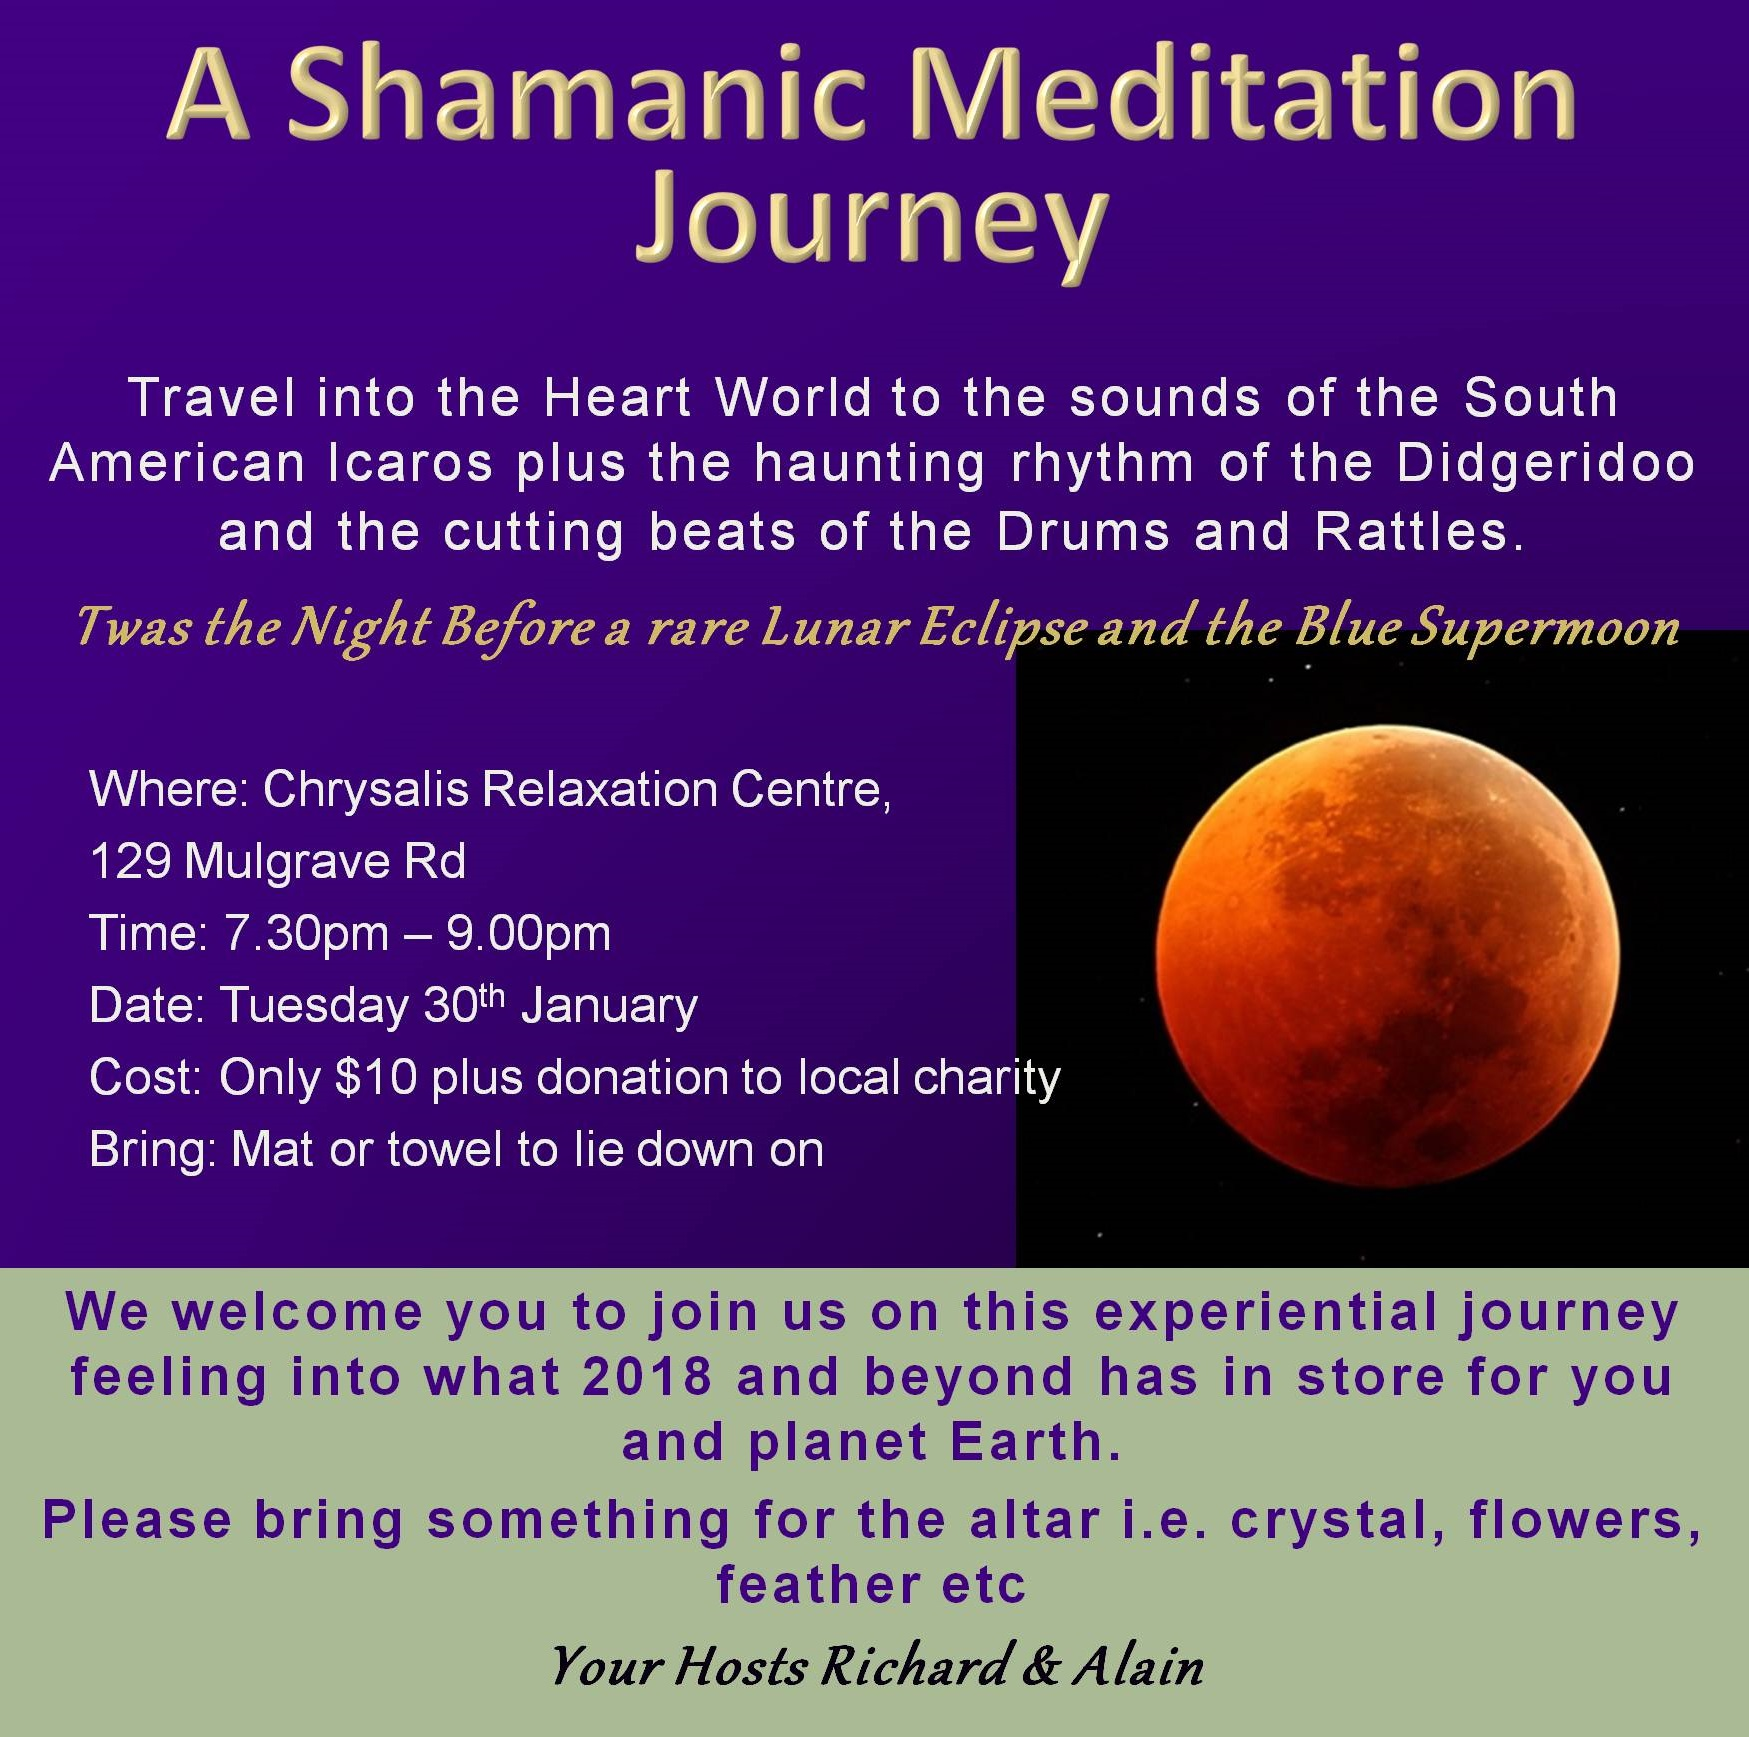 A Shamanic Meditation Journey